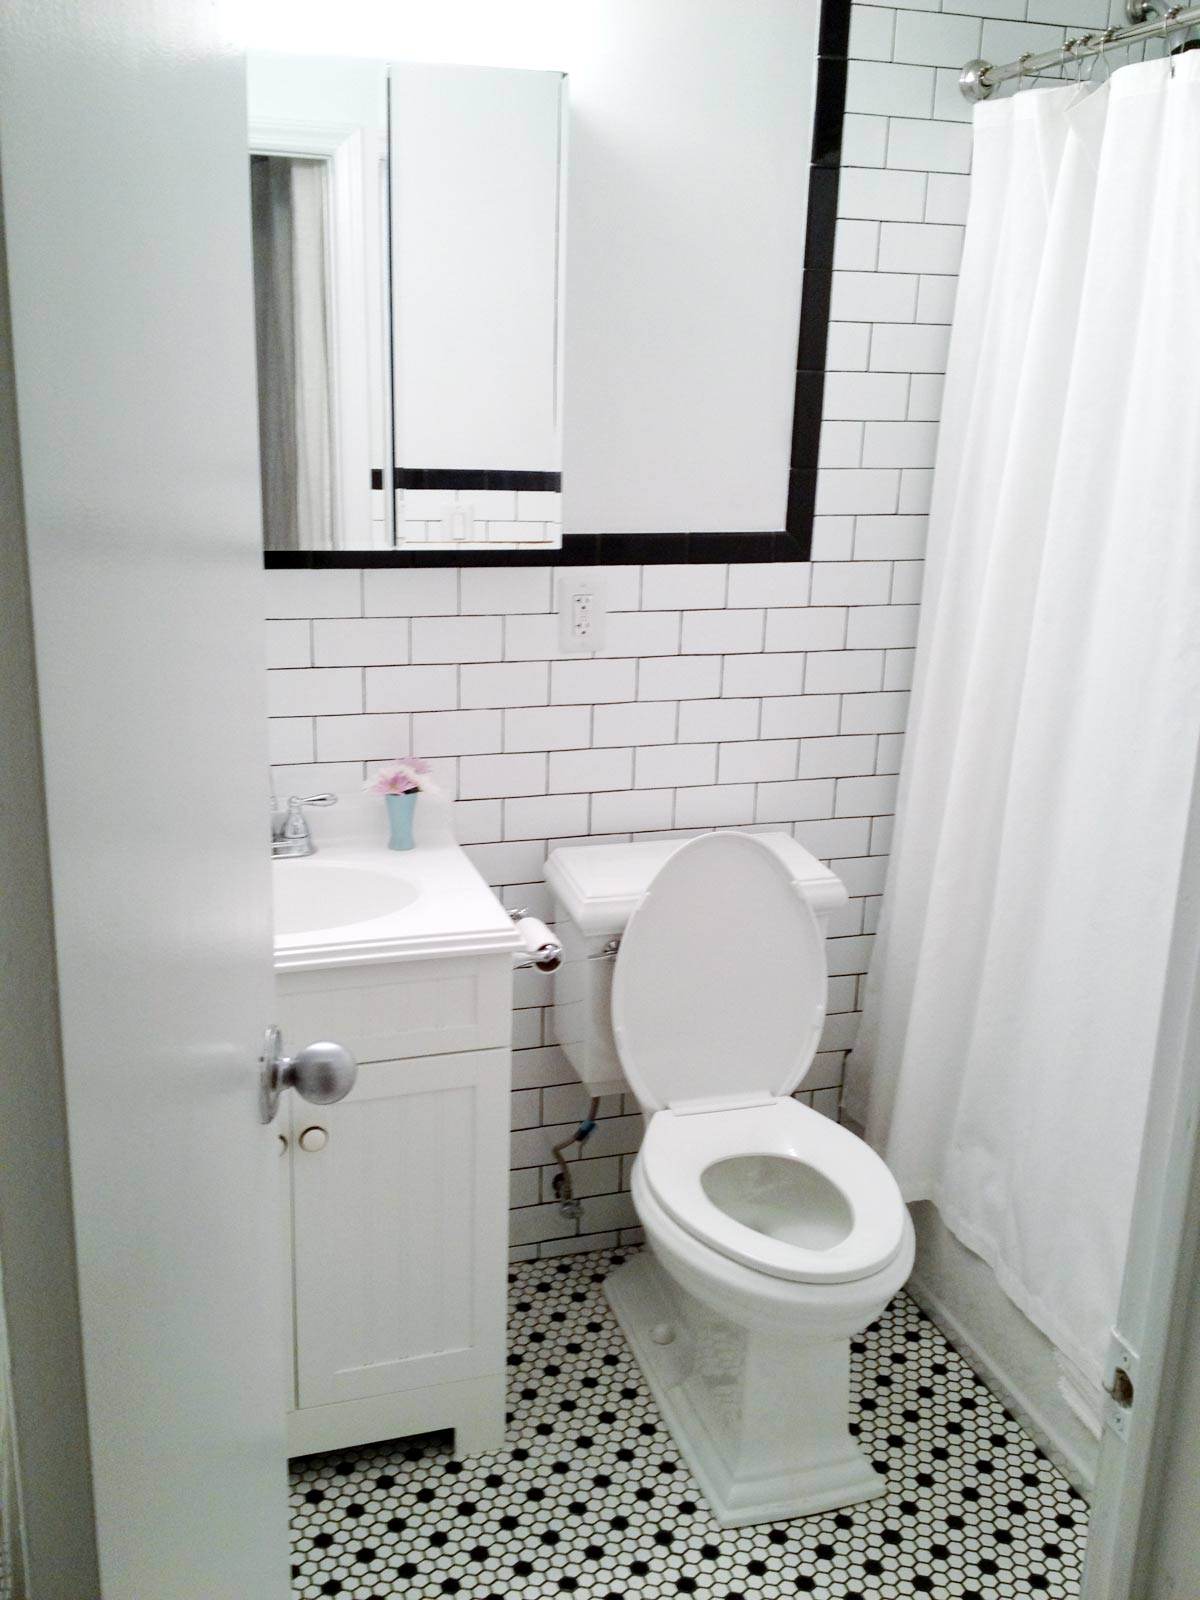 1930s Bathroom March 2013 Old Pearly Jenkins